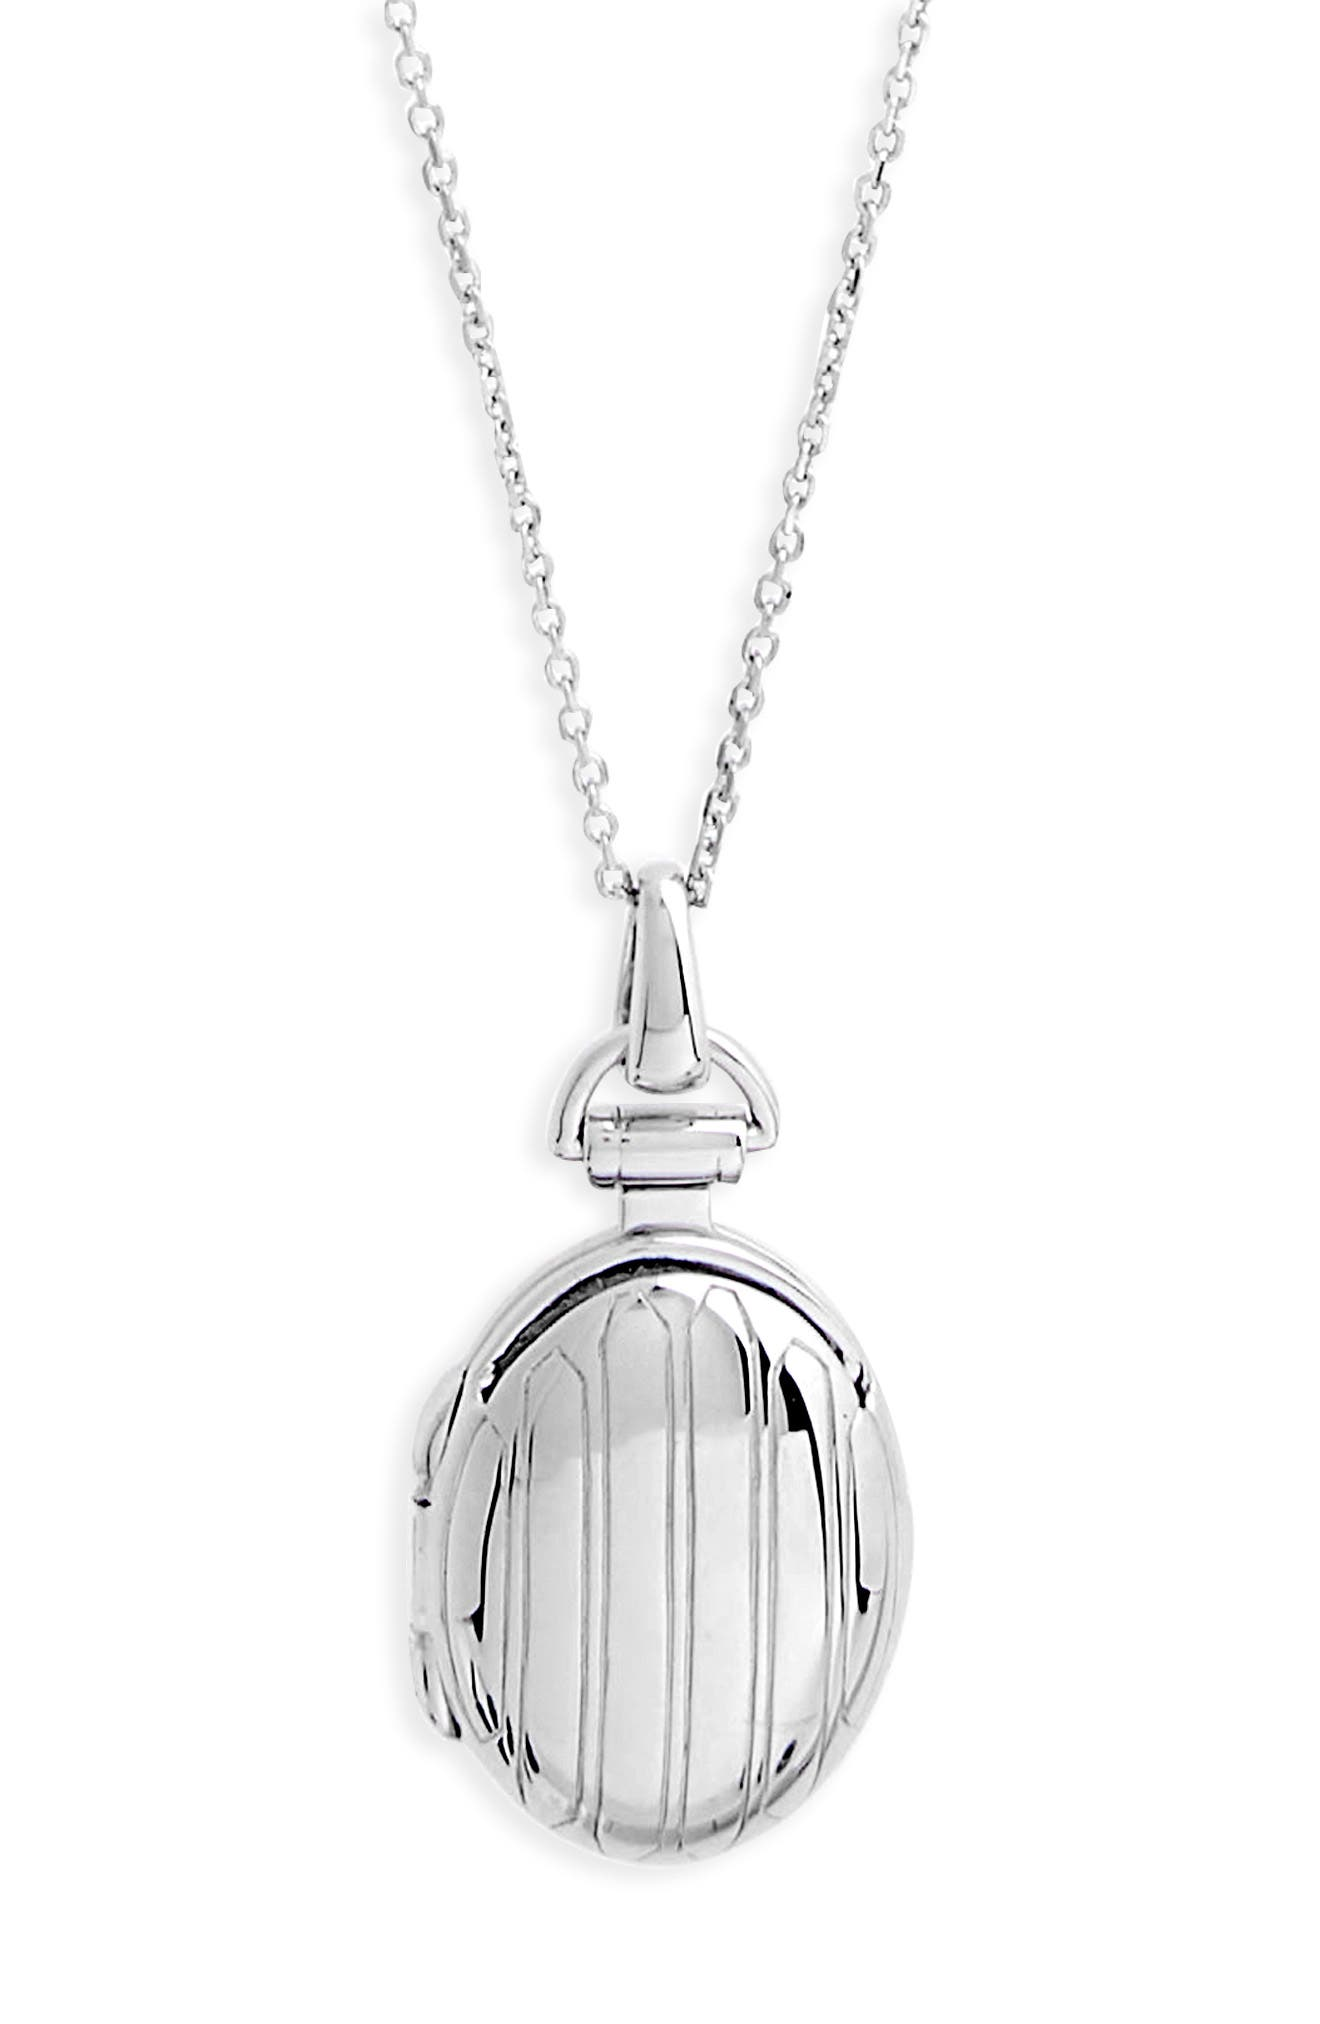 Petite Locket Necklace,                             Alternate thumbnail 3, color,                             STERLING SILVER